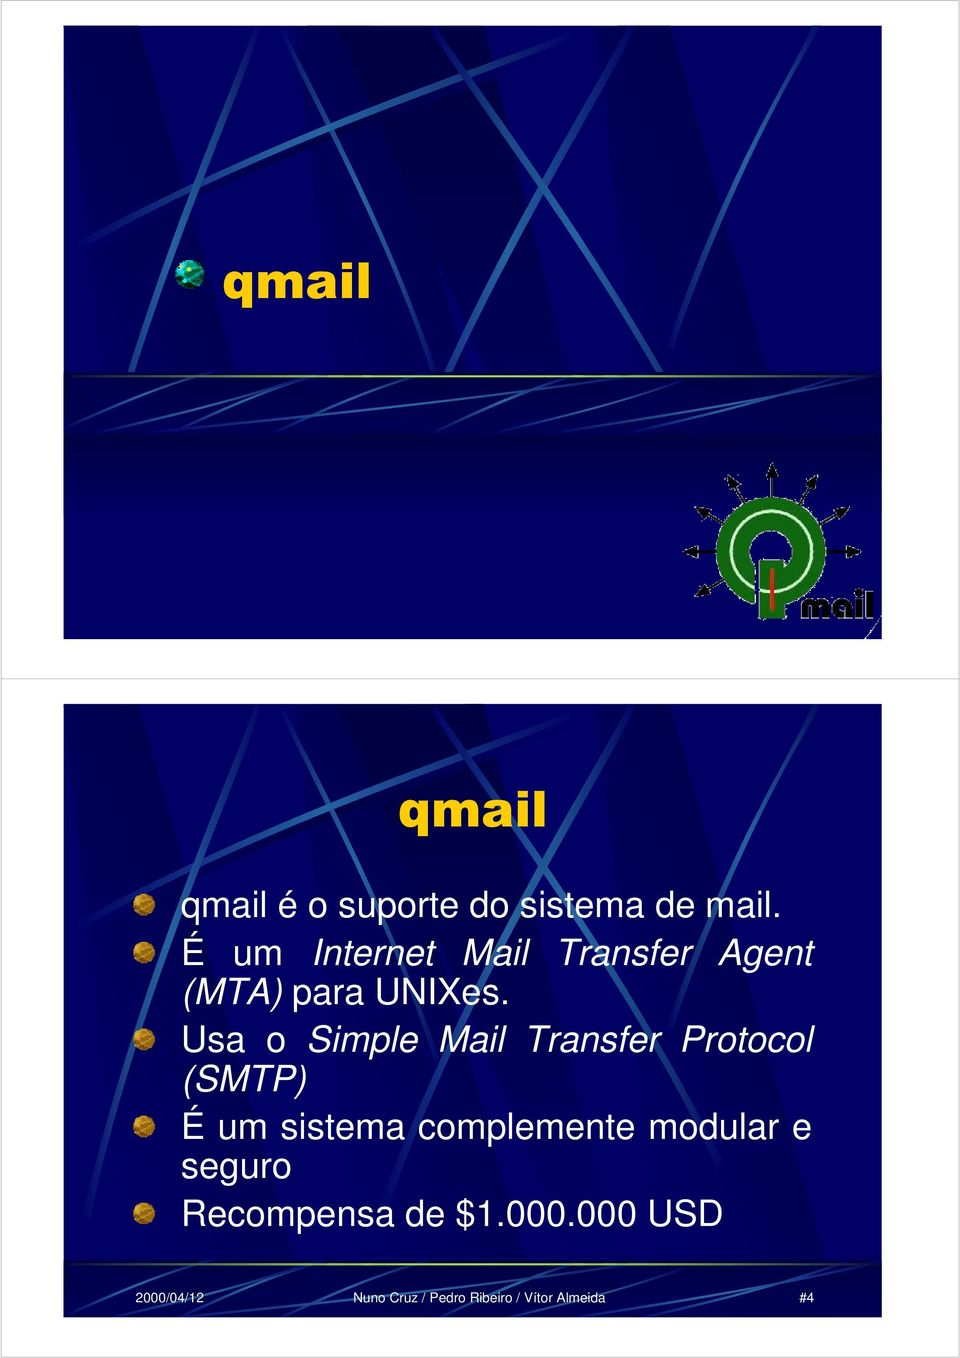 Usa o Simple Mail Transfer Protocol (SMTP) É um sistema complemente